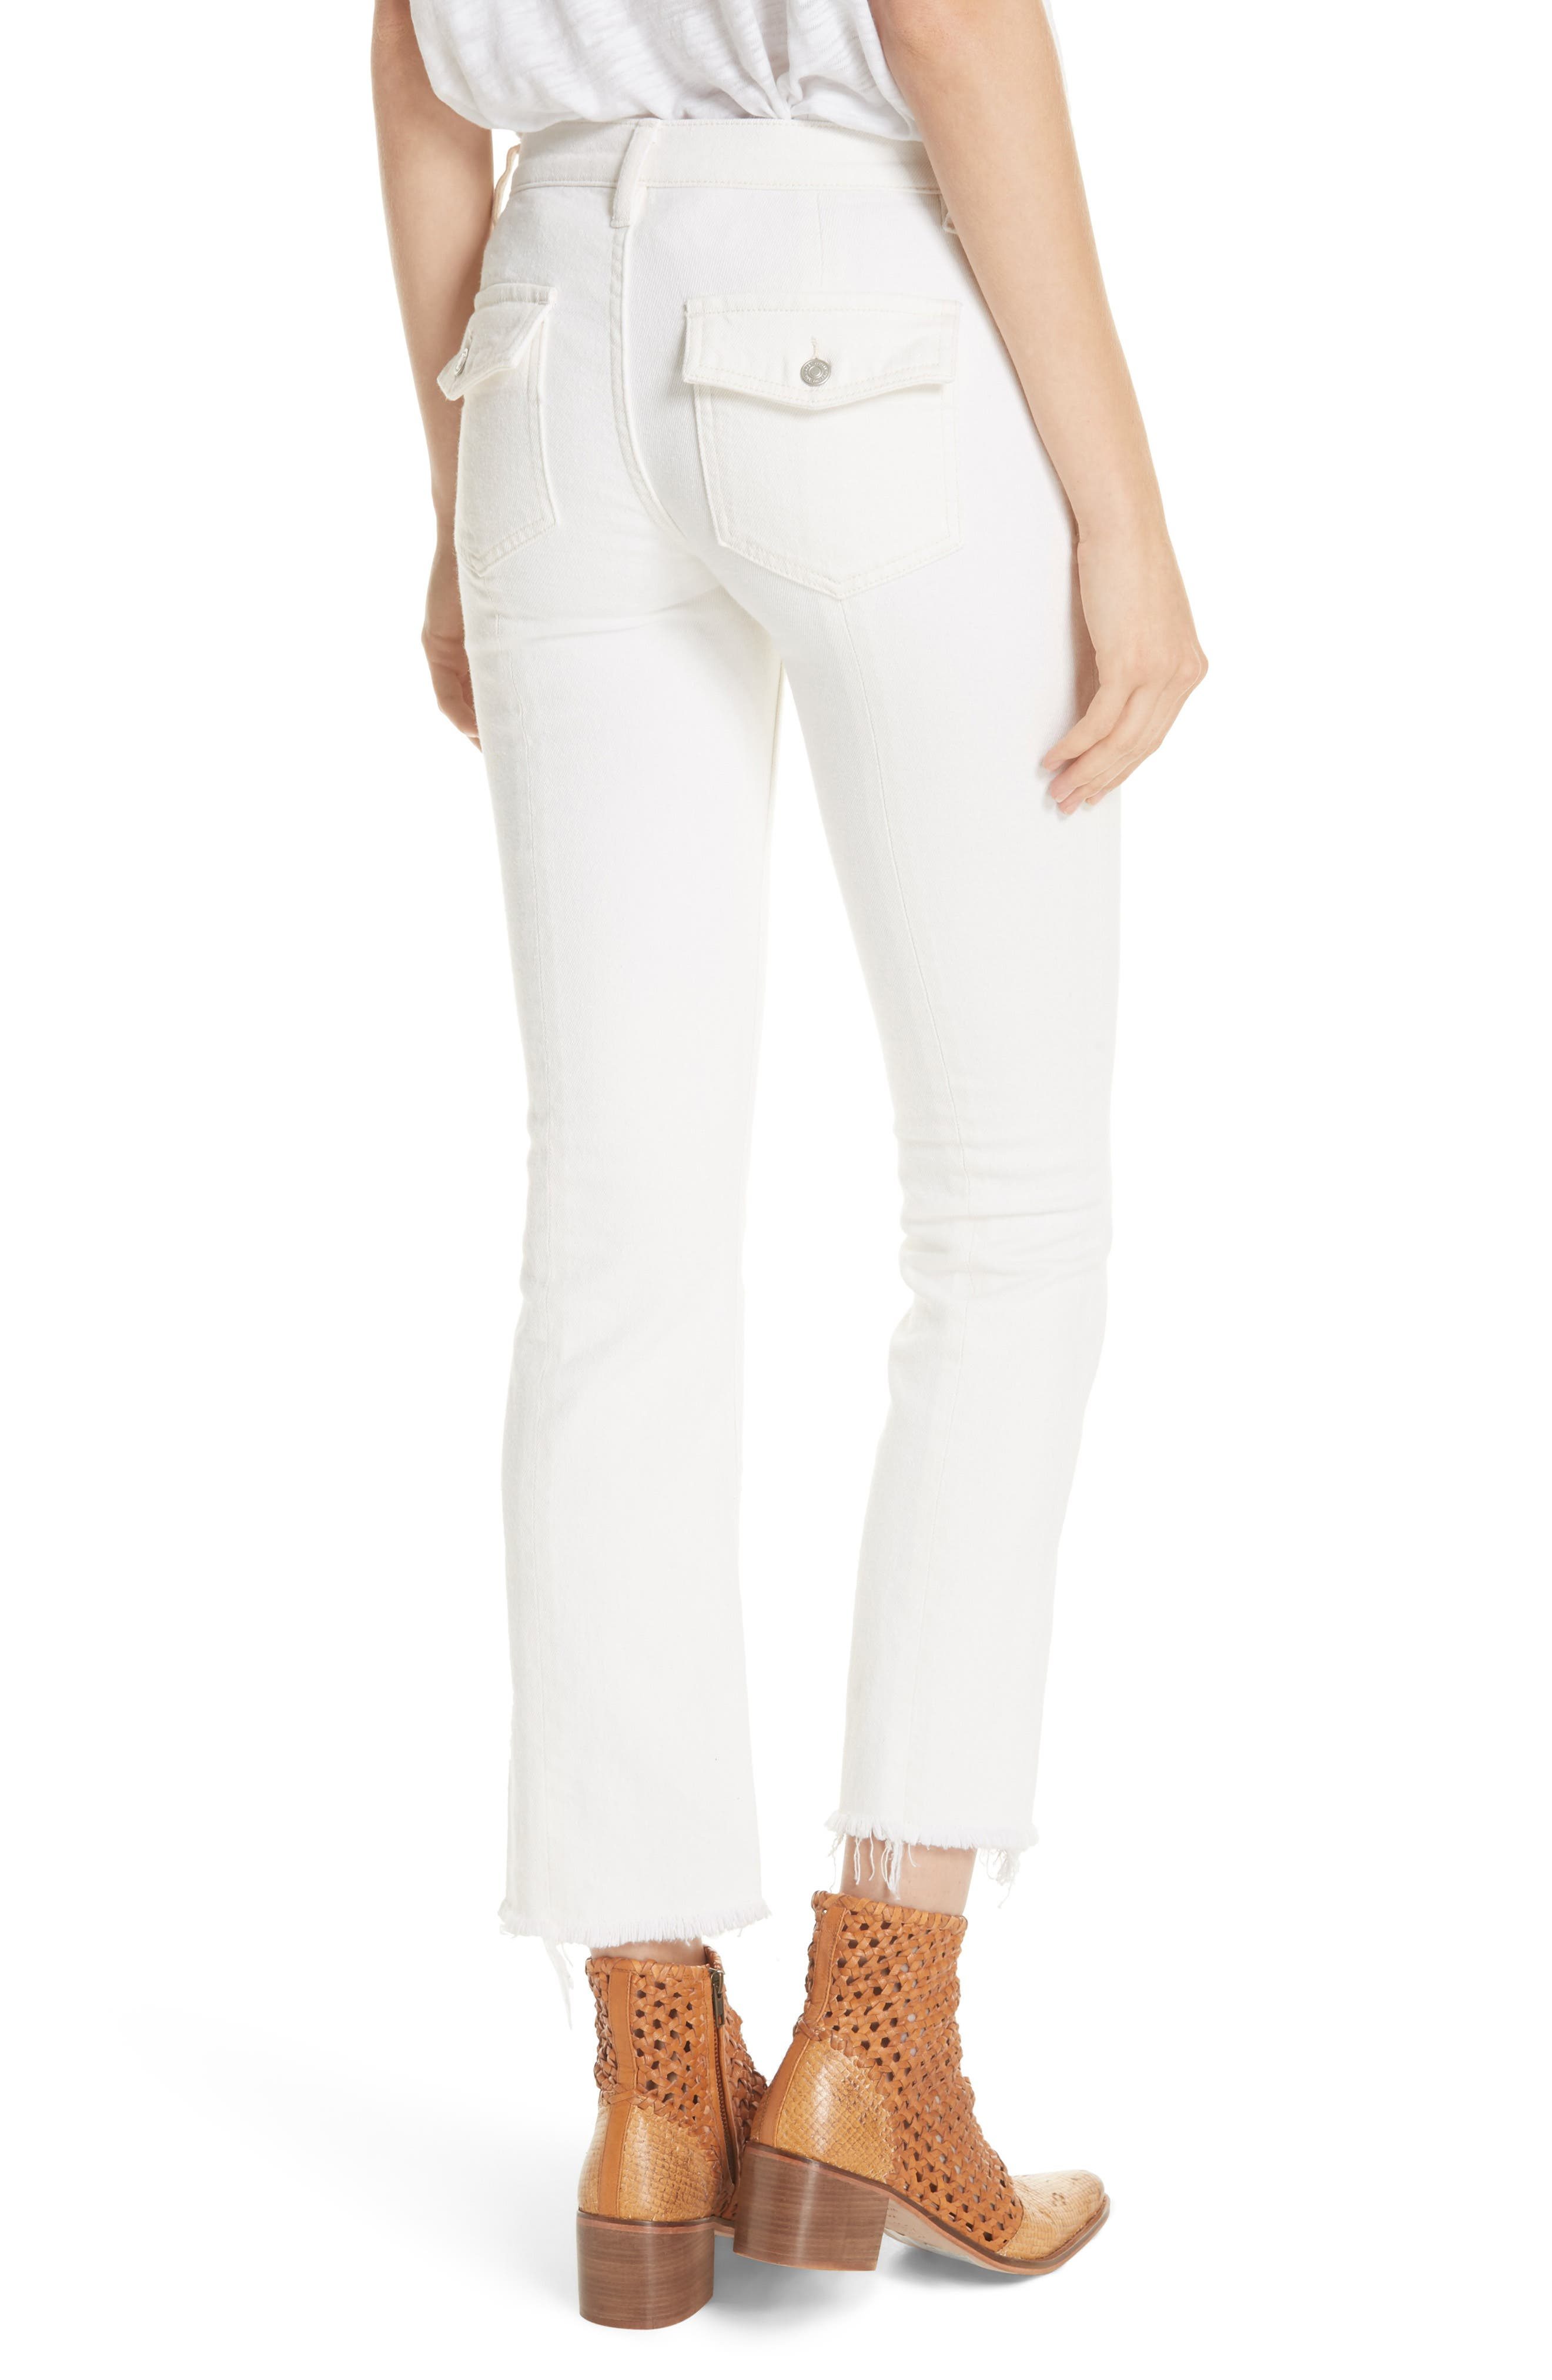 We the Free by Free People Austen Straight Leg Jeans,                             Alternate thumbnail 2, color,                             100